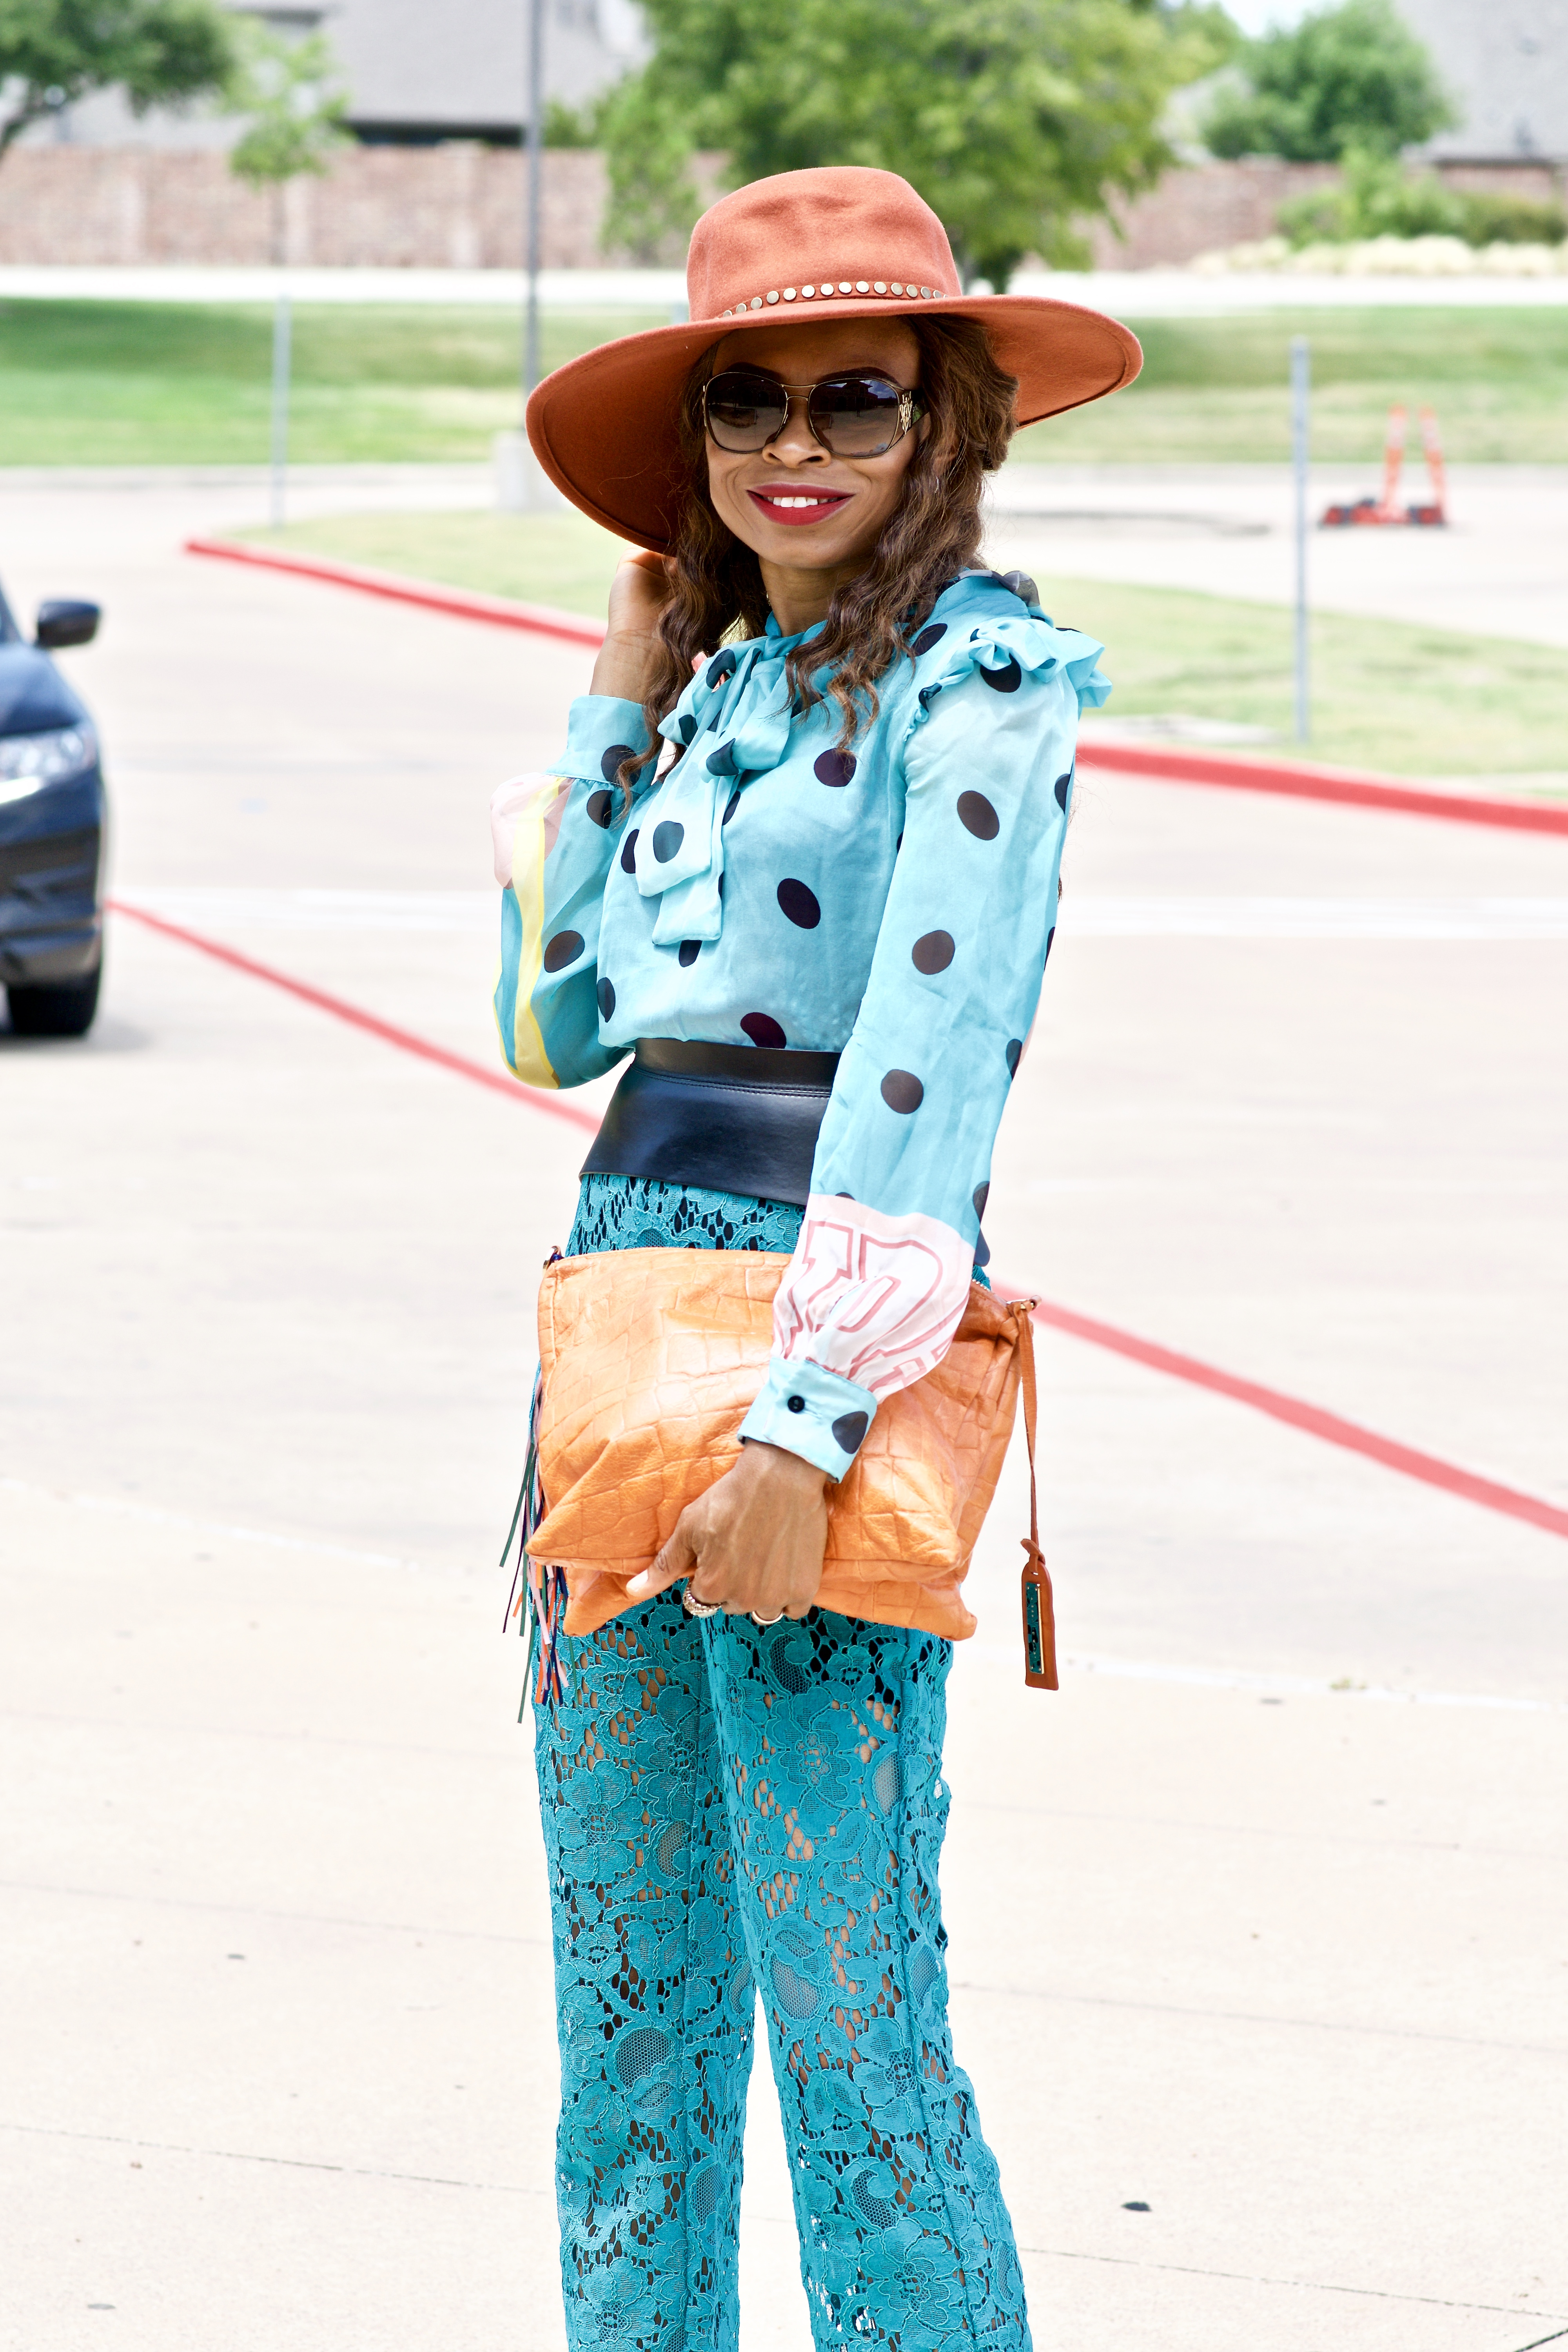 Styling Polka dots + Lace, timeless and classic